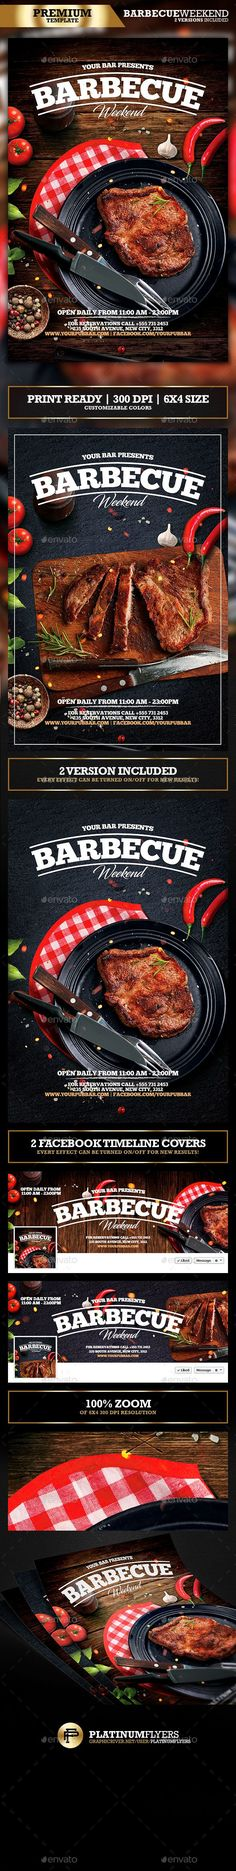 Barbecue BBQ Restaurant Promotion Flyer - PSD Template • Only available here ➝ http://graphicriver.net/item/barbecue-bbq-restaurant-promotion-flyer/16910804?ref=pxcr